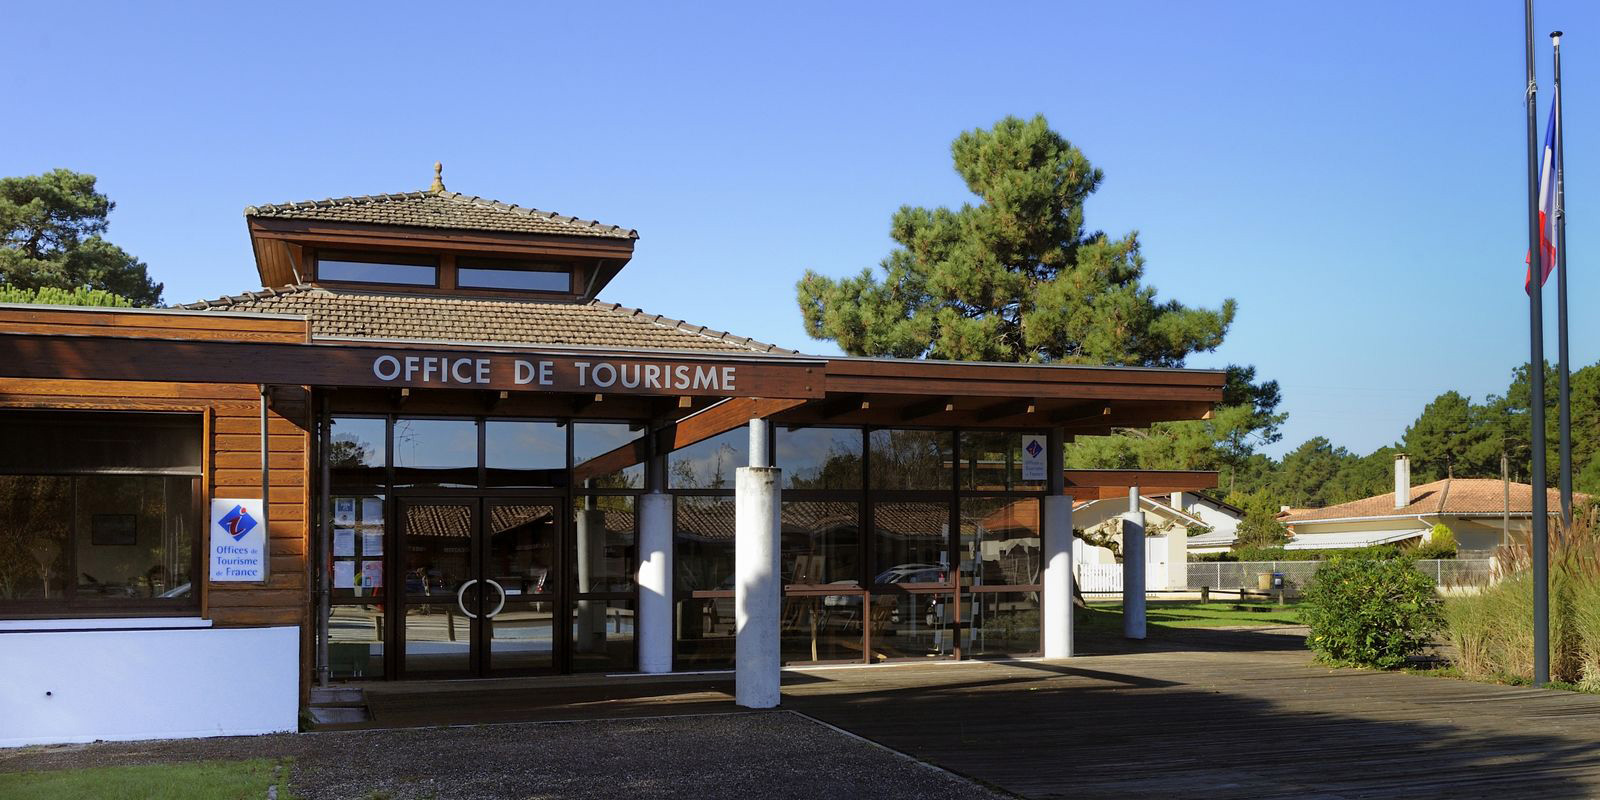 Office de tourisme l ge cap ferret - Chatelaillon plage office de tourisme ...